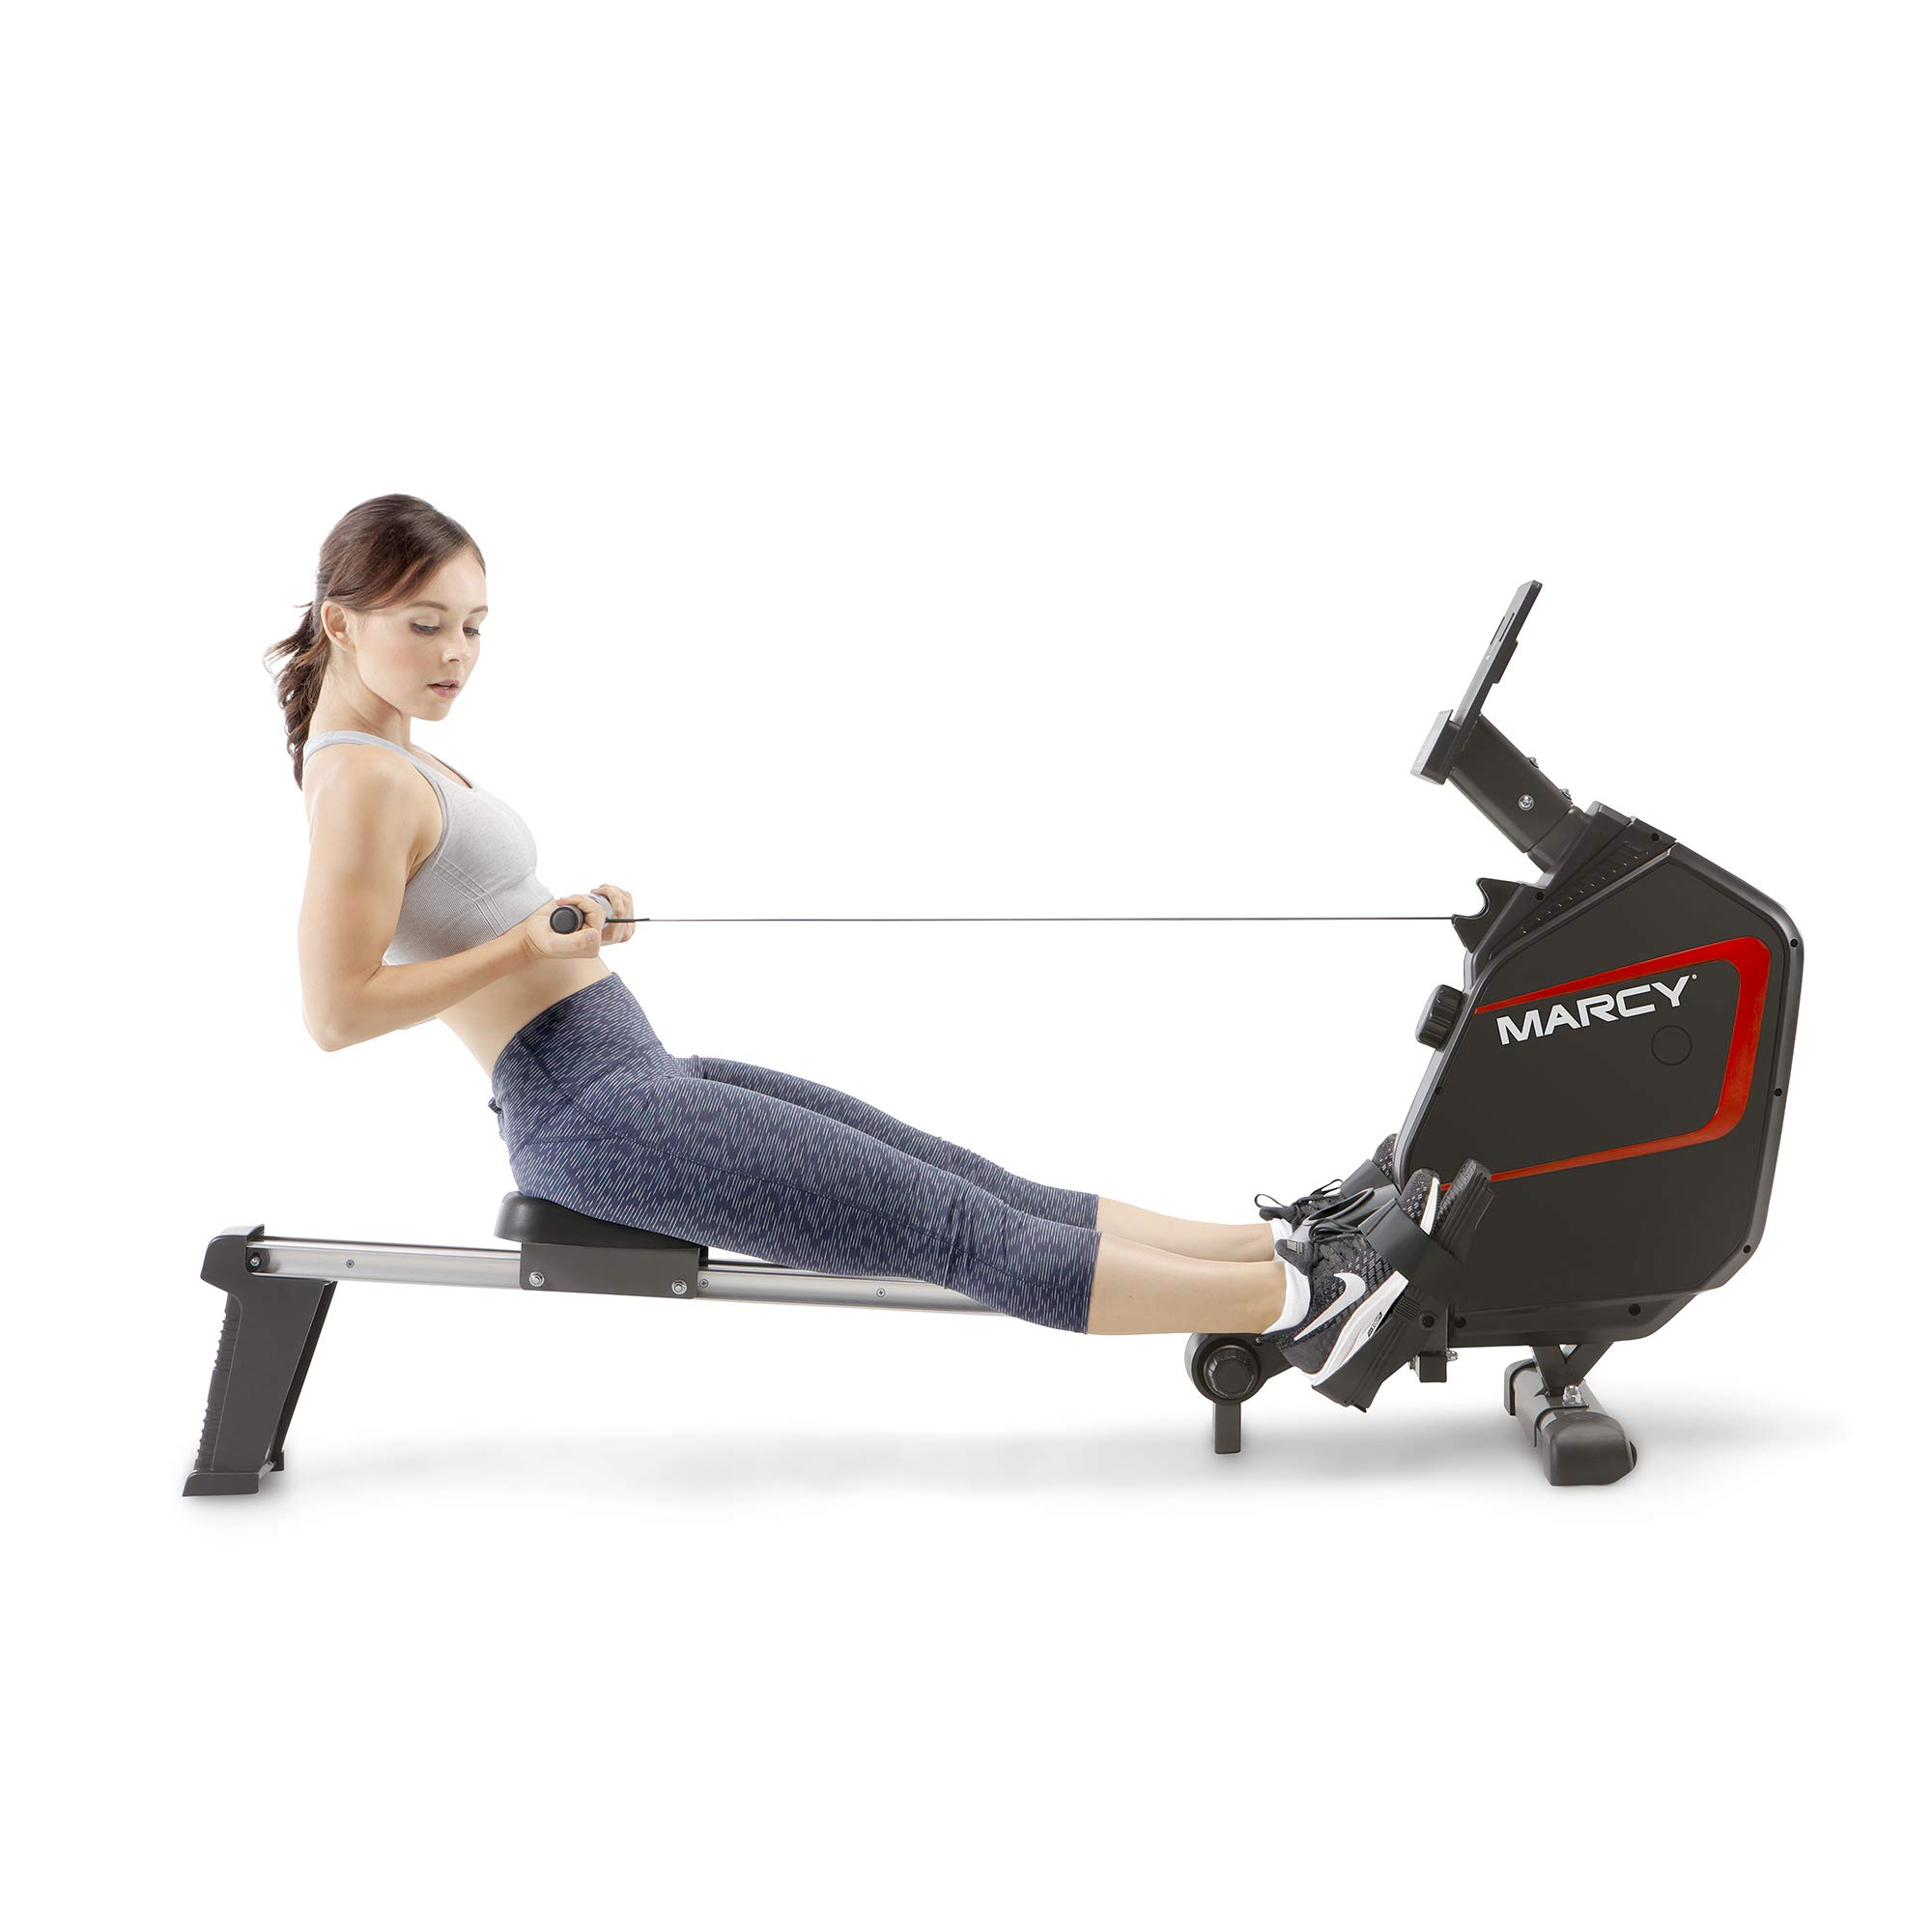 Marcy Foldable Regenerating Rowing Machine for Cardio and Strength Training Exercises NS-6002RE